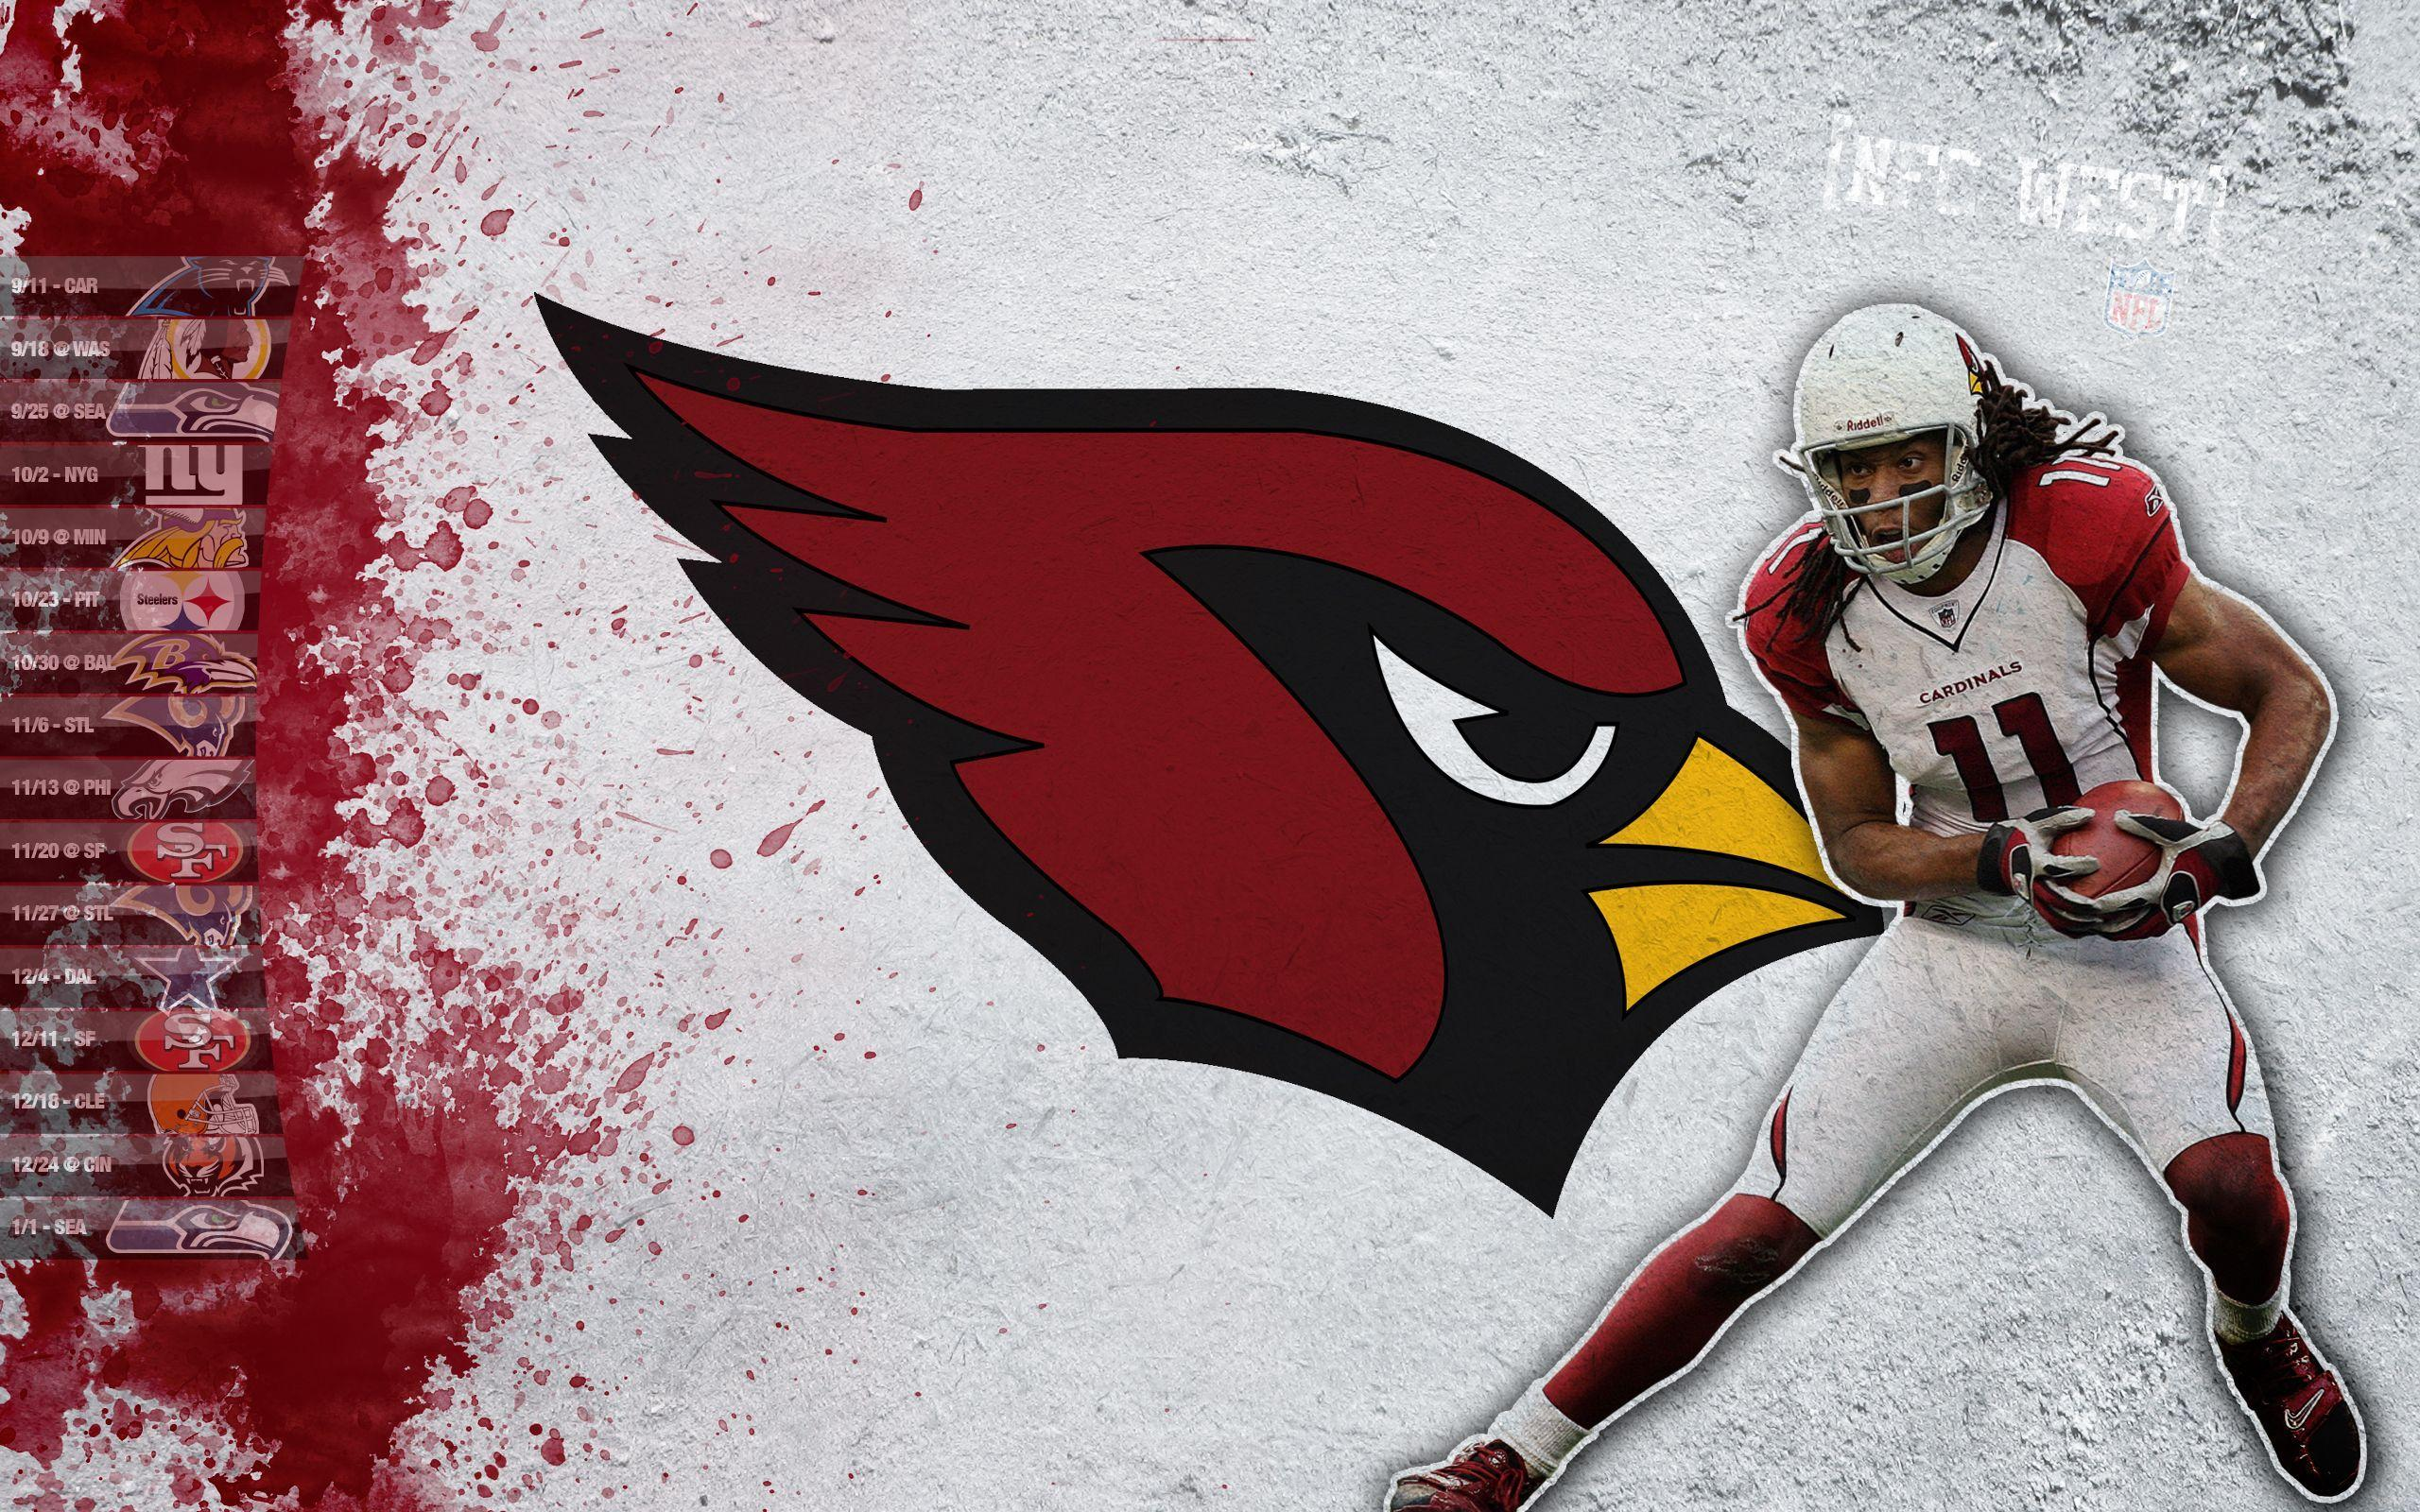 Cardinals Wallpaper Football - WallpaperSafari